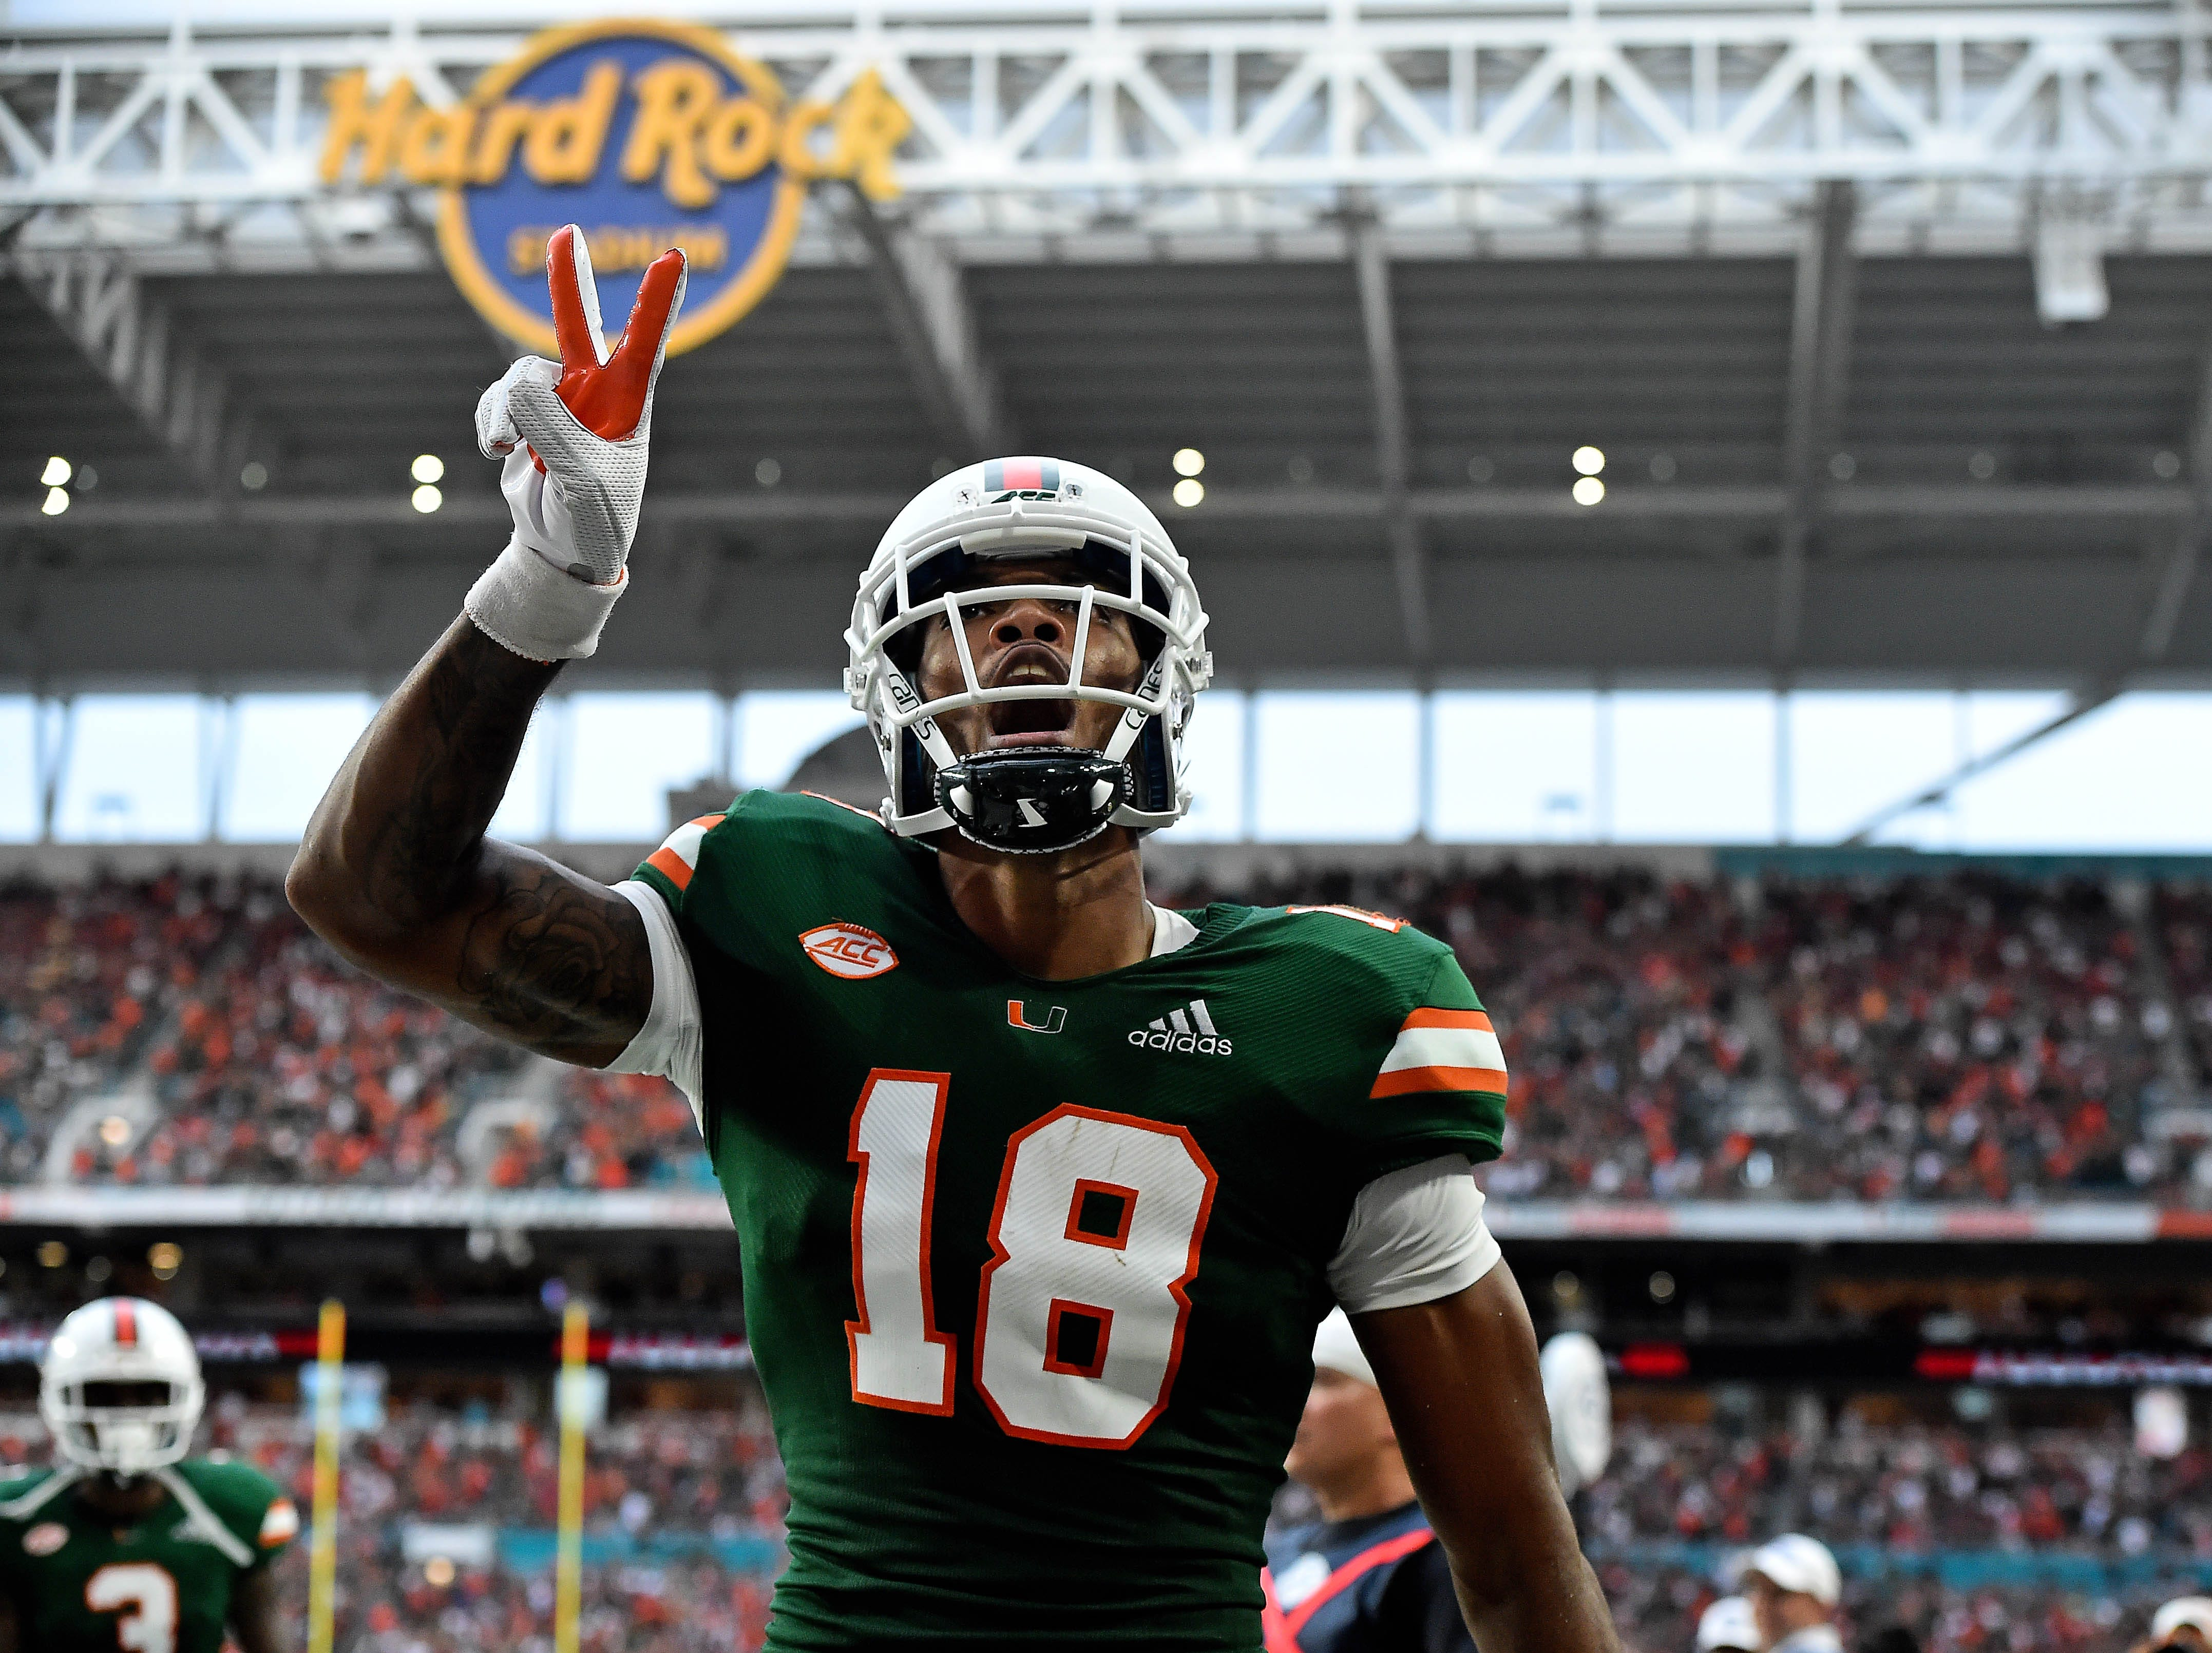 Oct 6, 2018; Miami Gardens, FL, USA; Miami Hurricanes wide receiver Lawrence Cager (18) celebrates after scoring a touchdown against the Florida State Seminoles during the second half at Hard Rock Stadium. Mandatory Credit: Jasen Vinlove-USA TODAY Sports